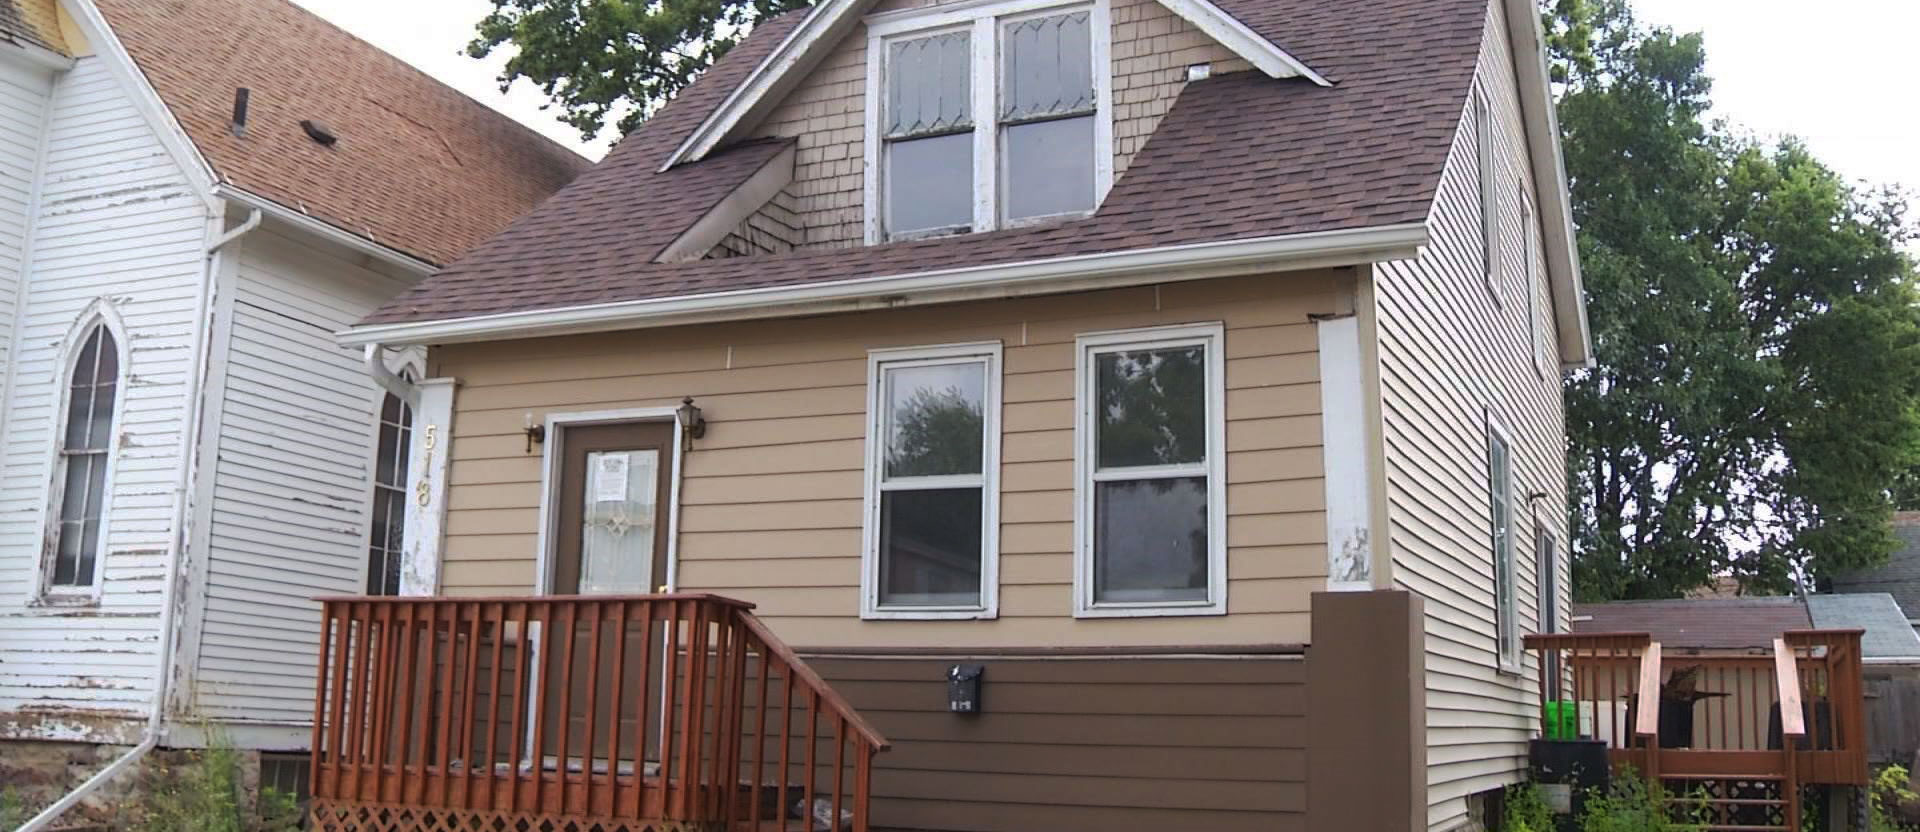 Sioux falls best city to flip houses for What is flipping houses